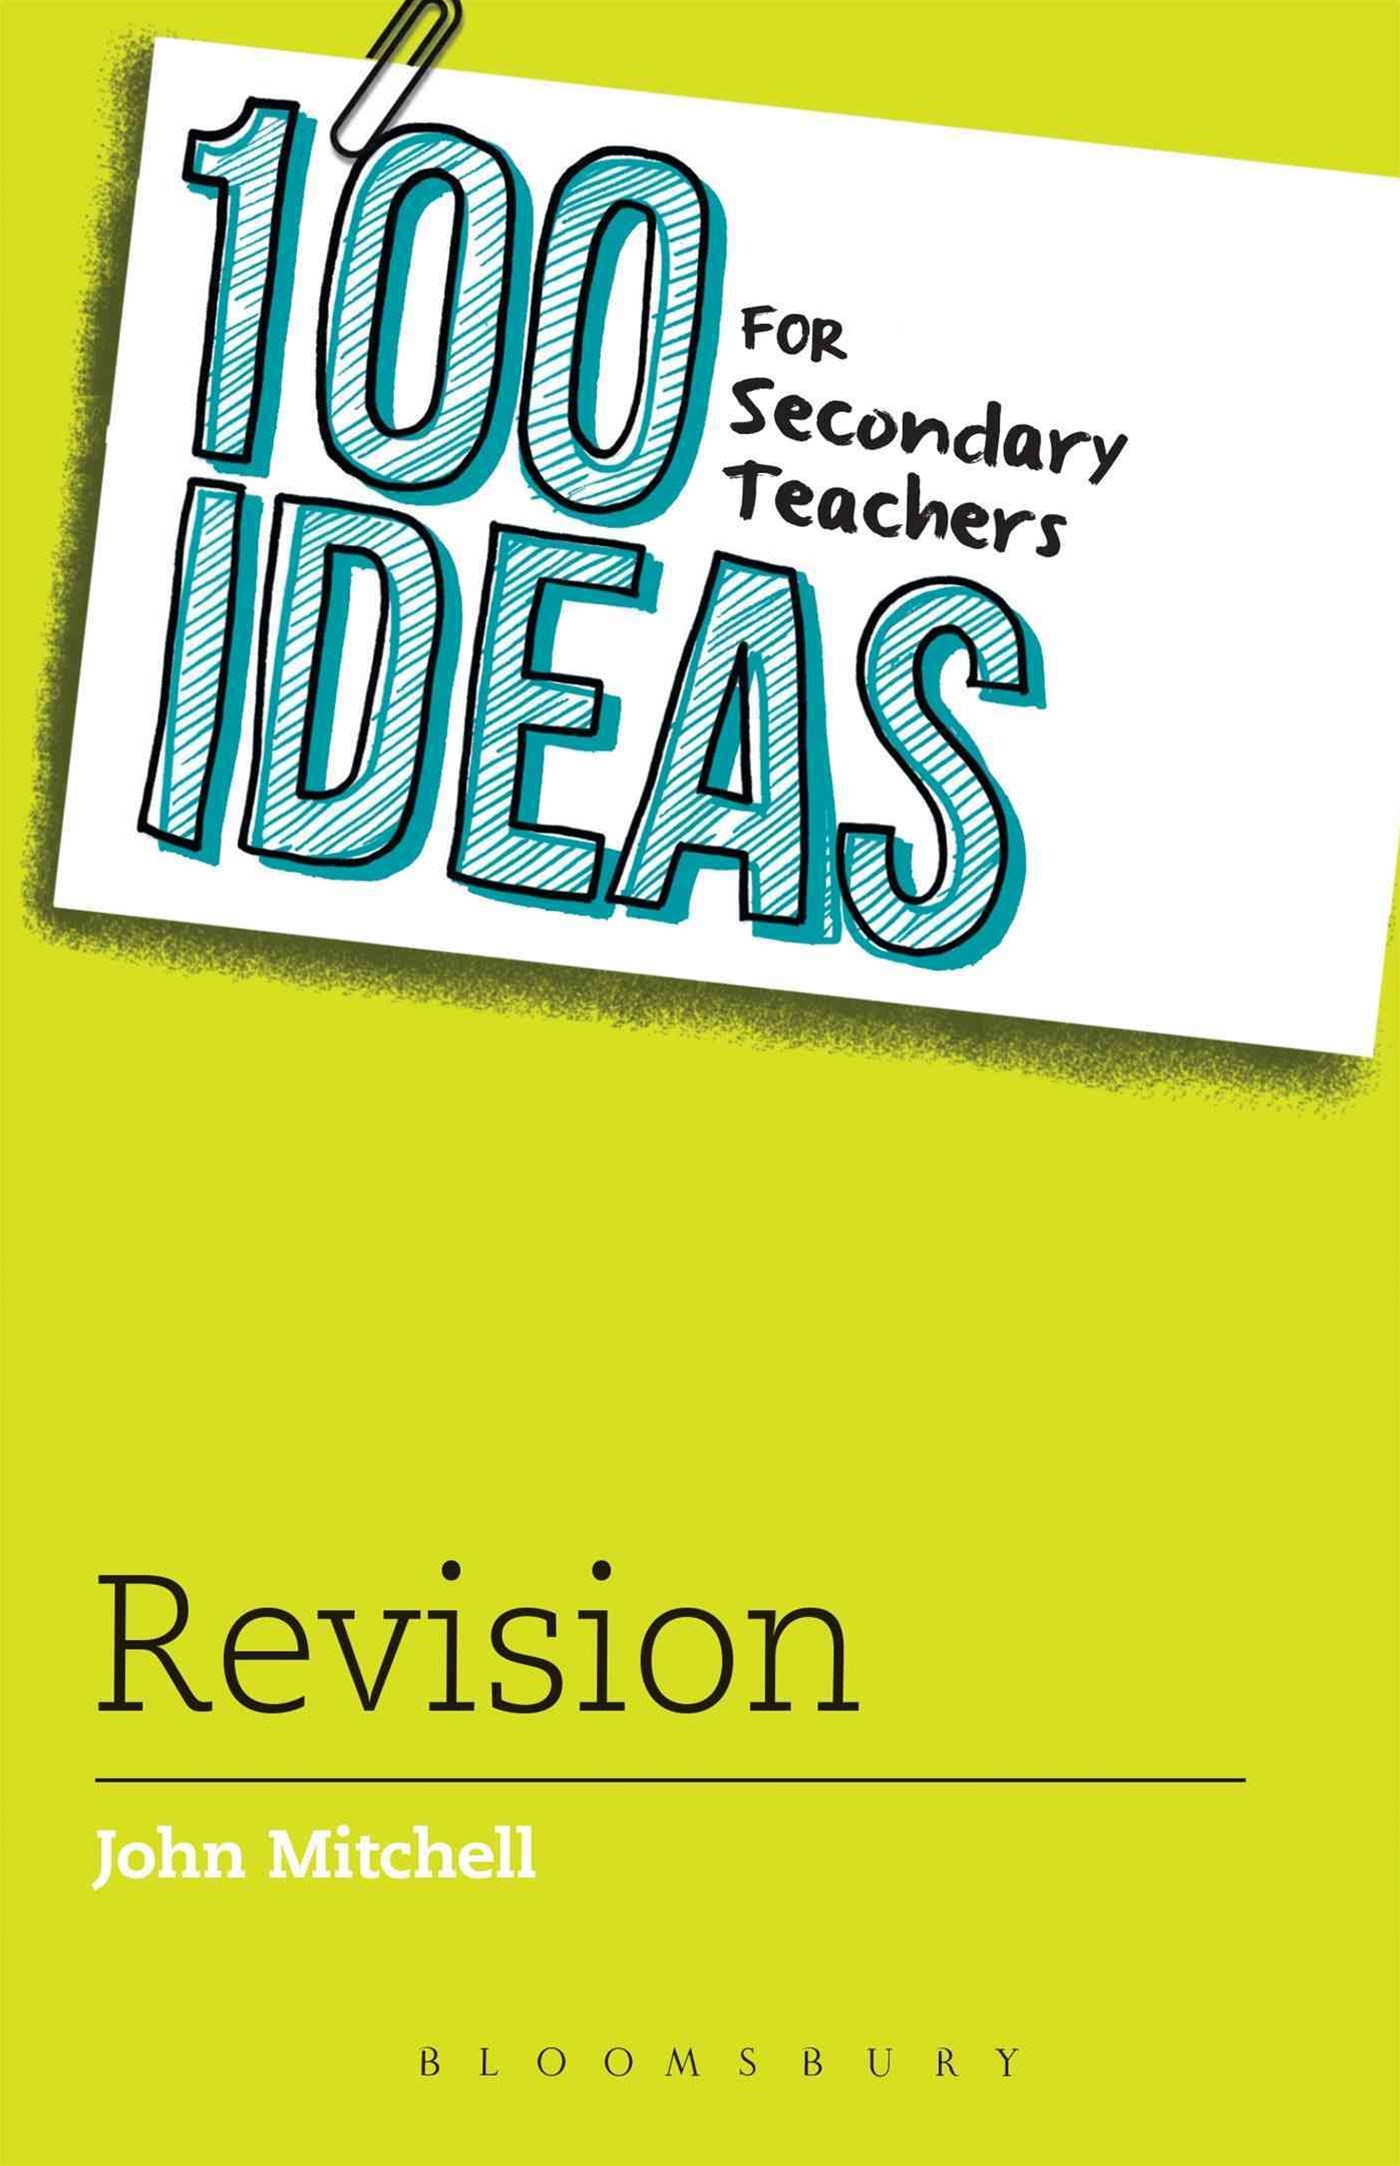 100 Ideas for Secondary Teachers - Revision